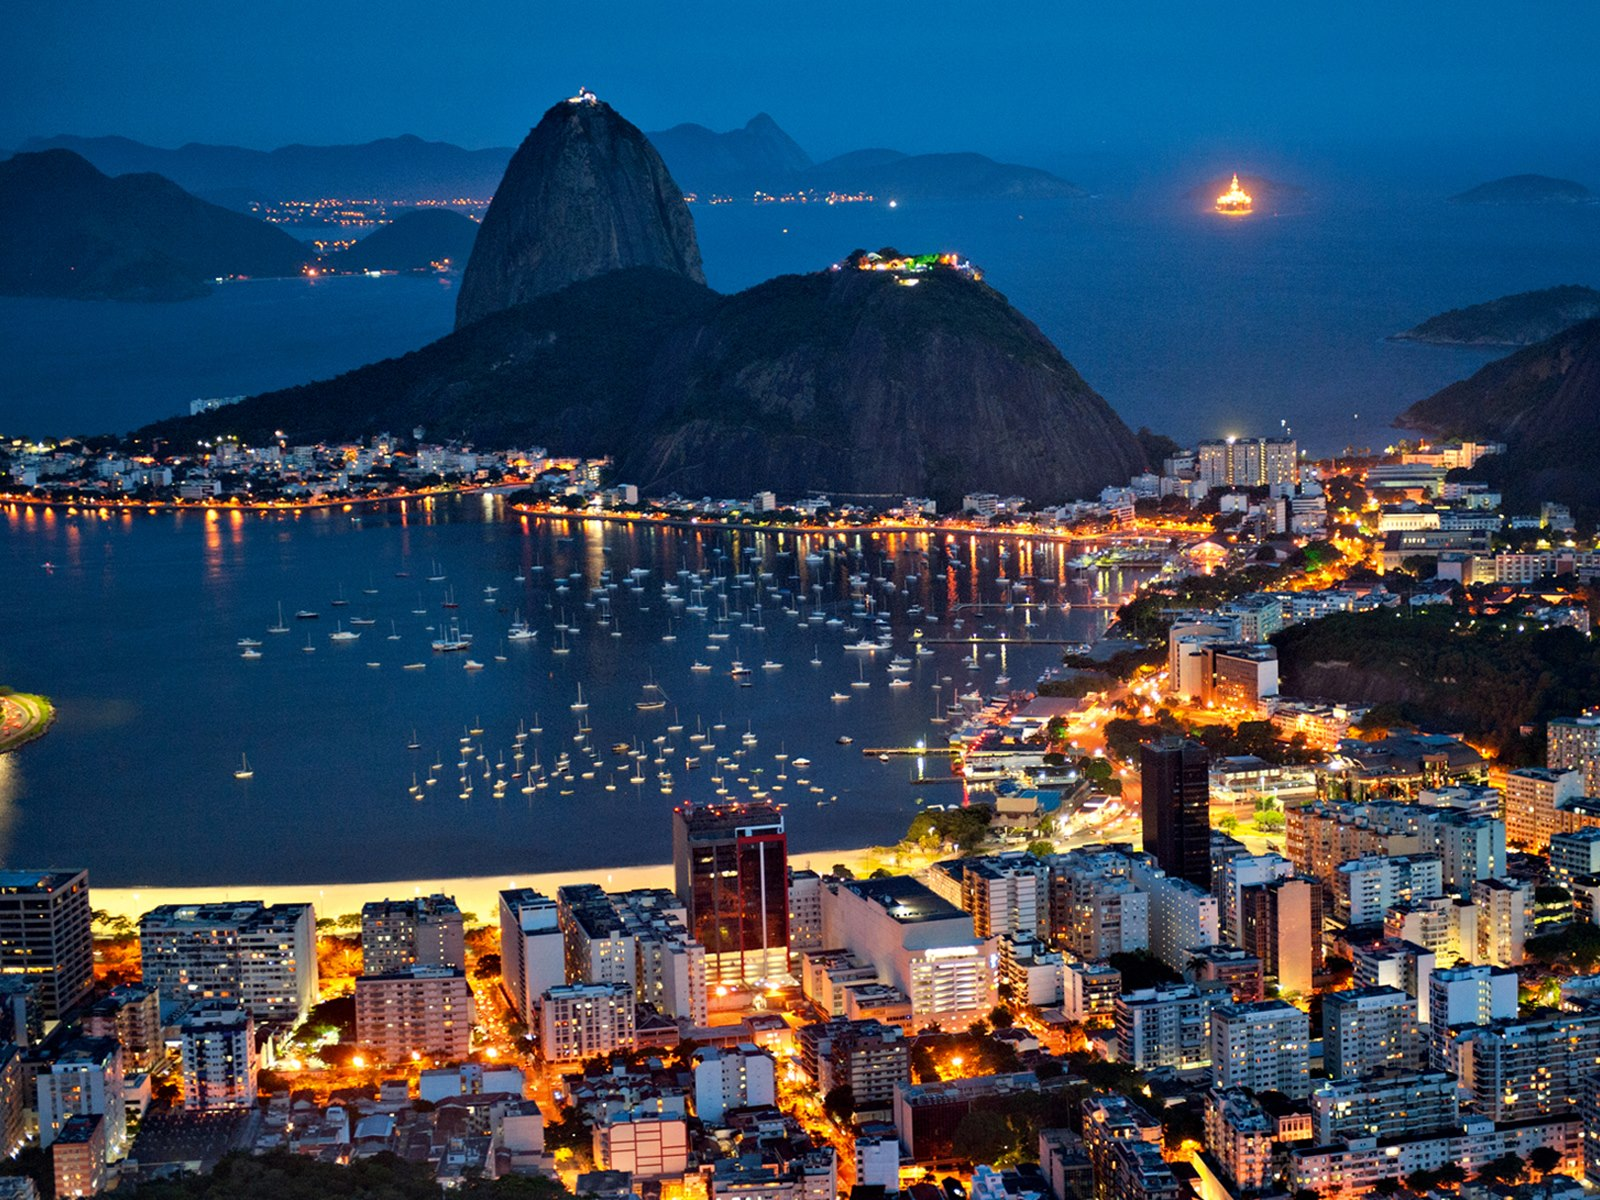 Rio De Janeiro, Brazil wallpapers and images - wallpapers